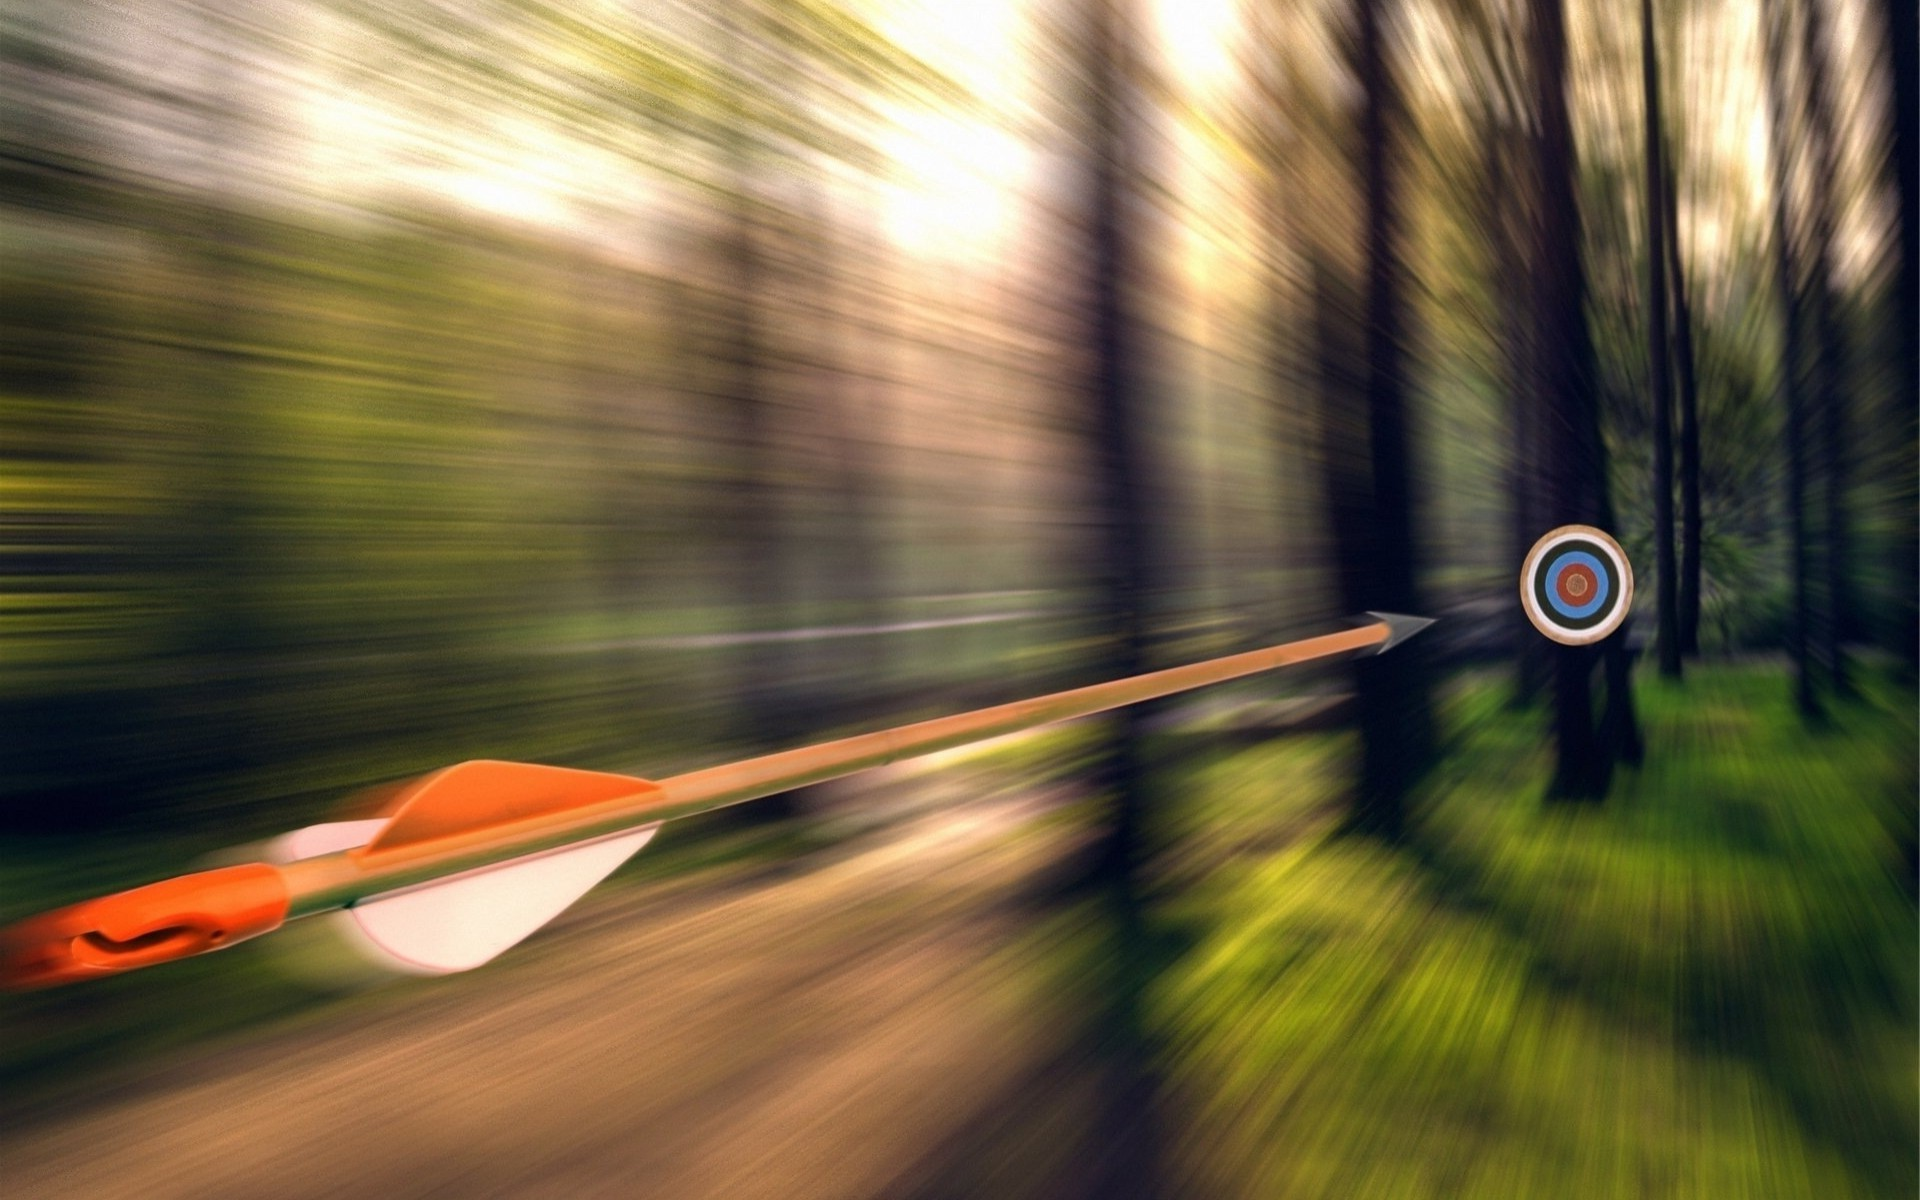 3d Motion Wallpaper Download Arrows Motion Blur Forest Targets Trees Wallpapers Hd